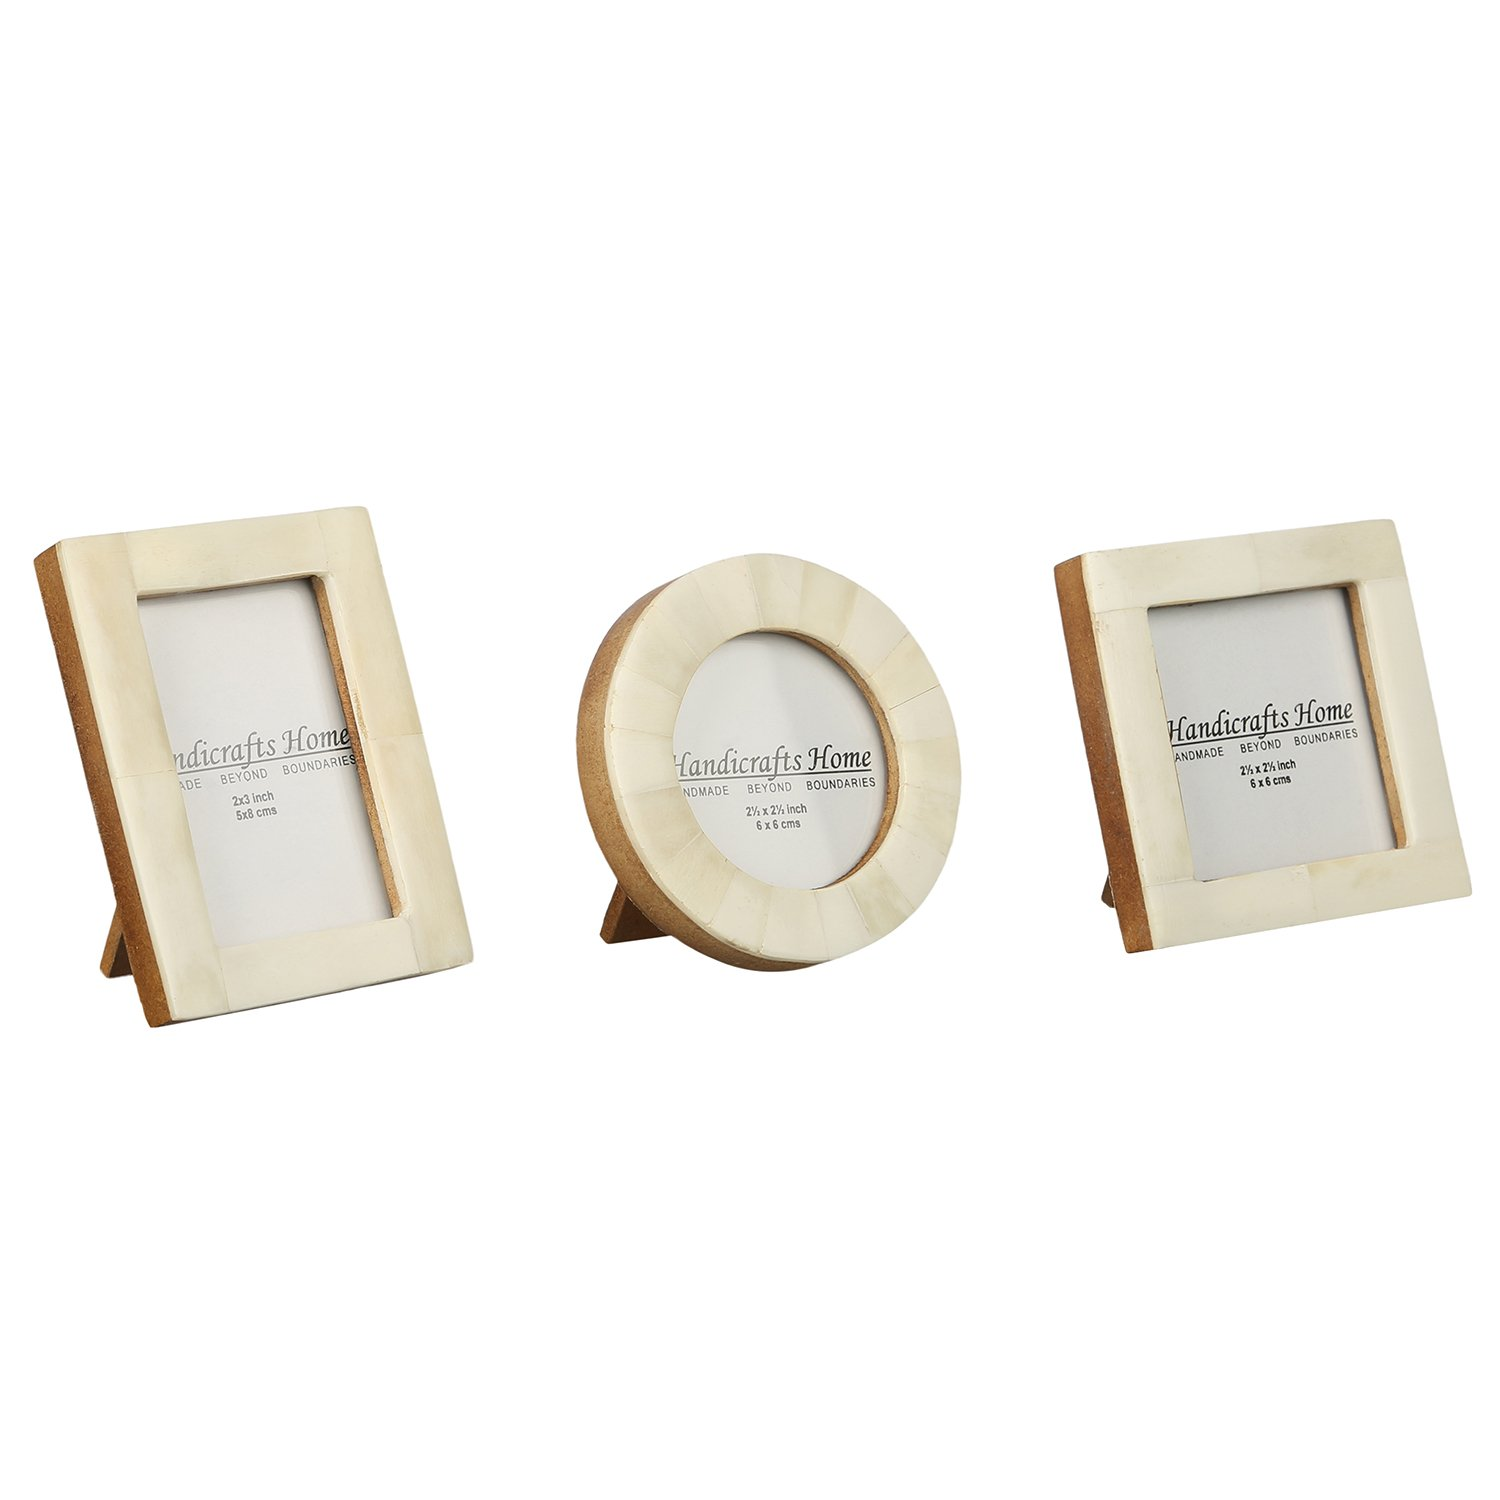 Handicrafts Home Baby Picture Frame for Newborn Girls and Boys Shower - Birthday Gifts Vintage Photo Frames Set of 3 Pieces (White) by Handicrafts Home